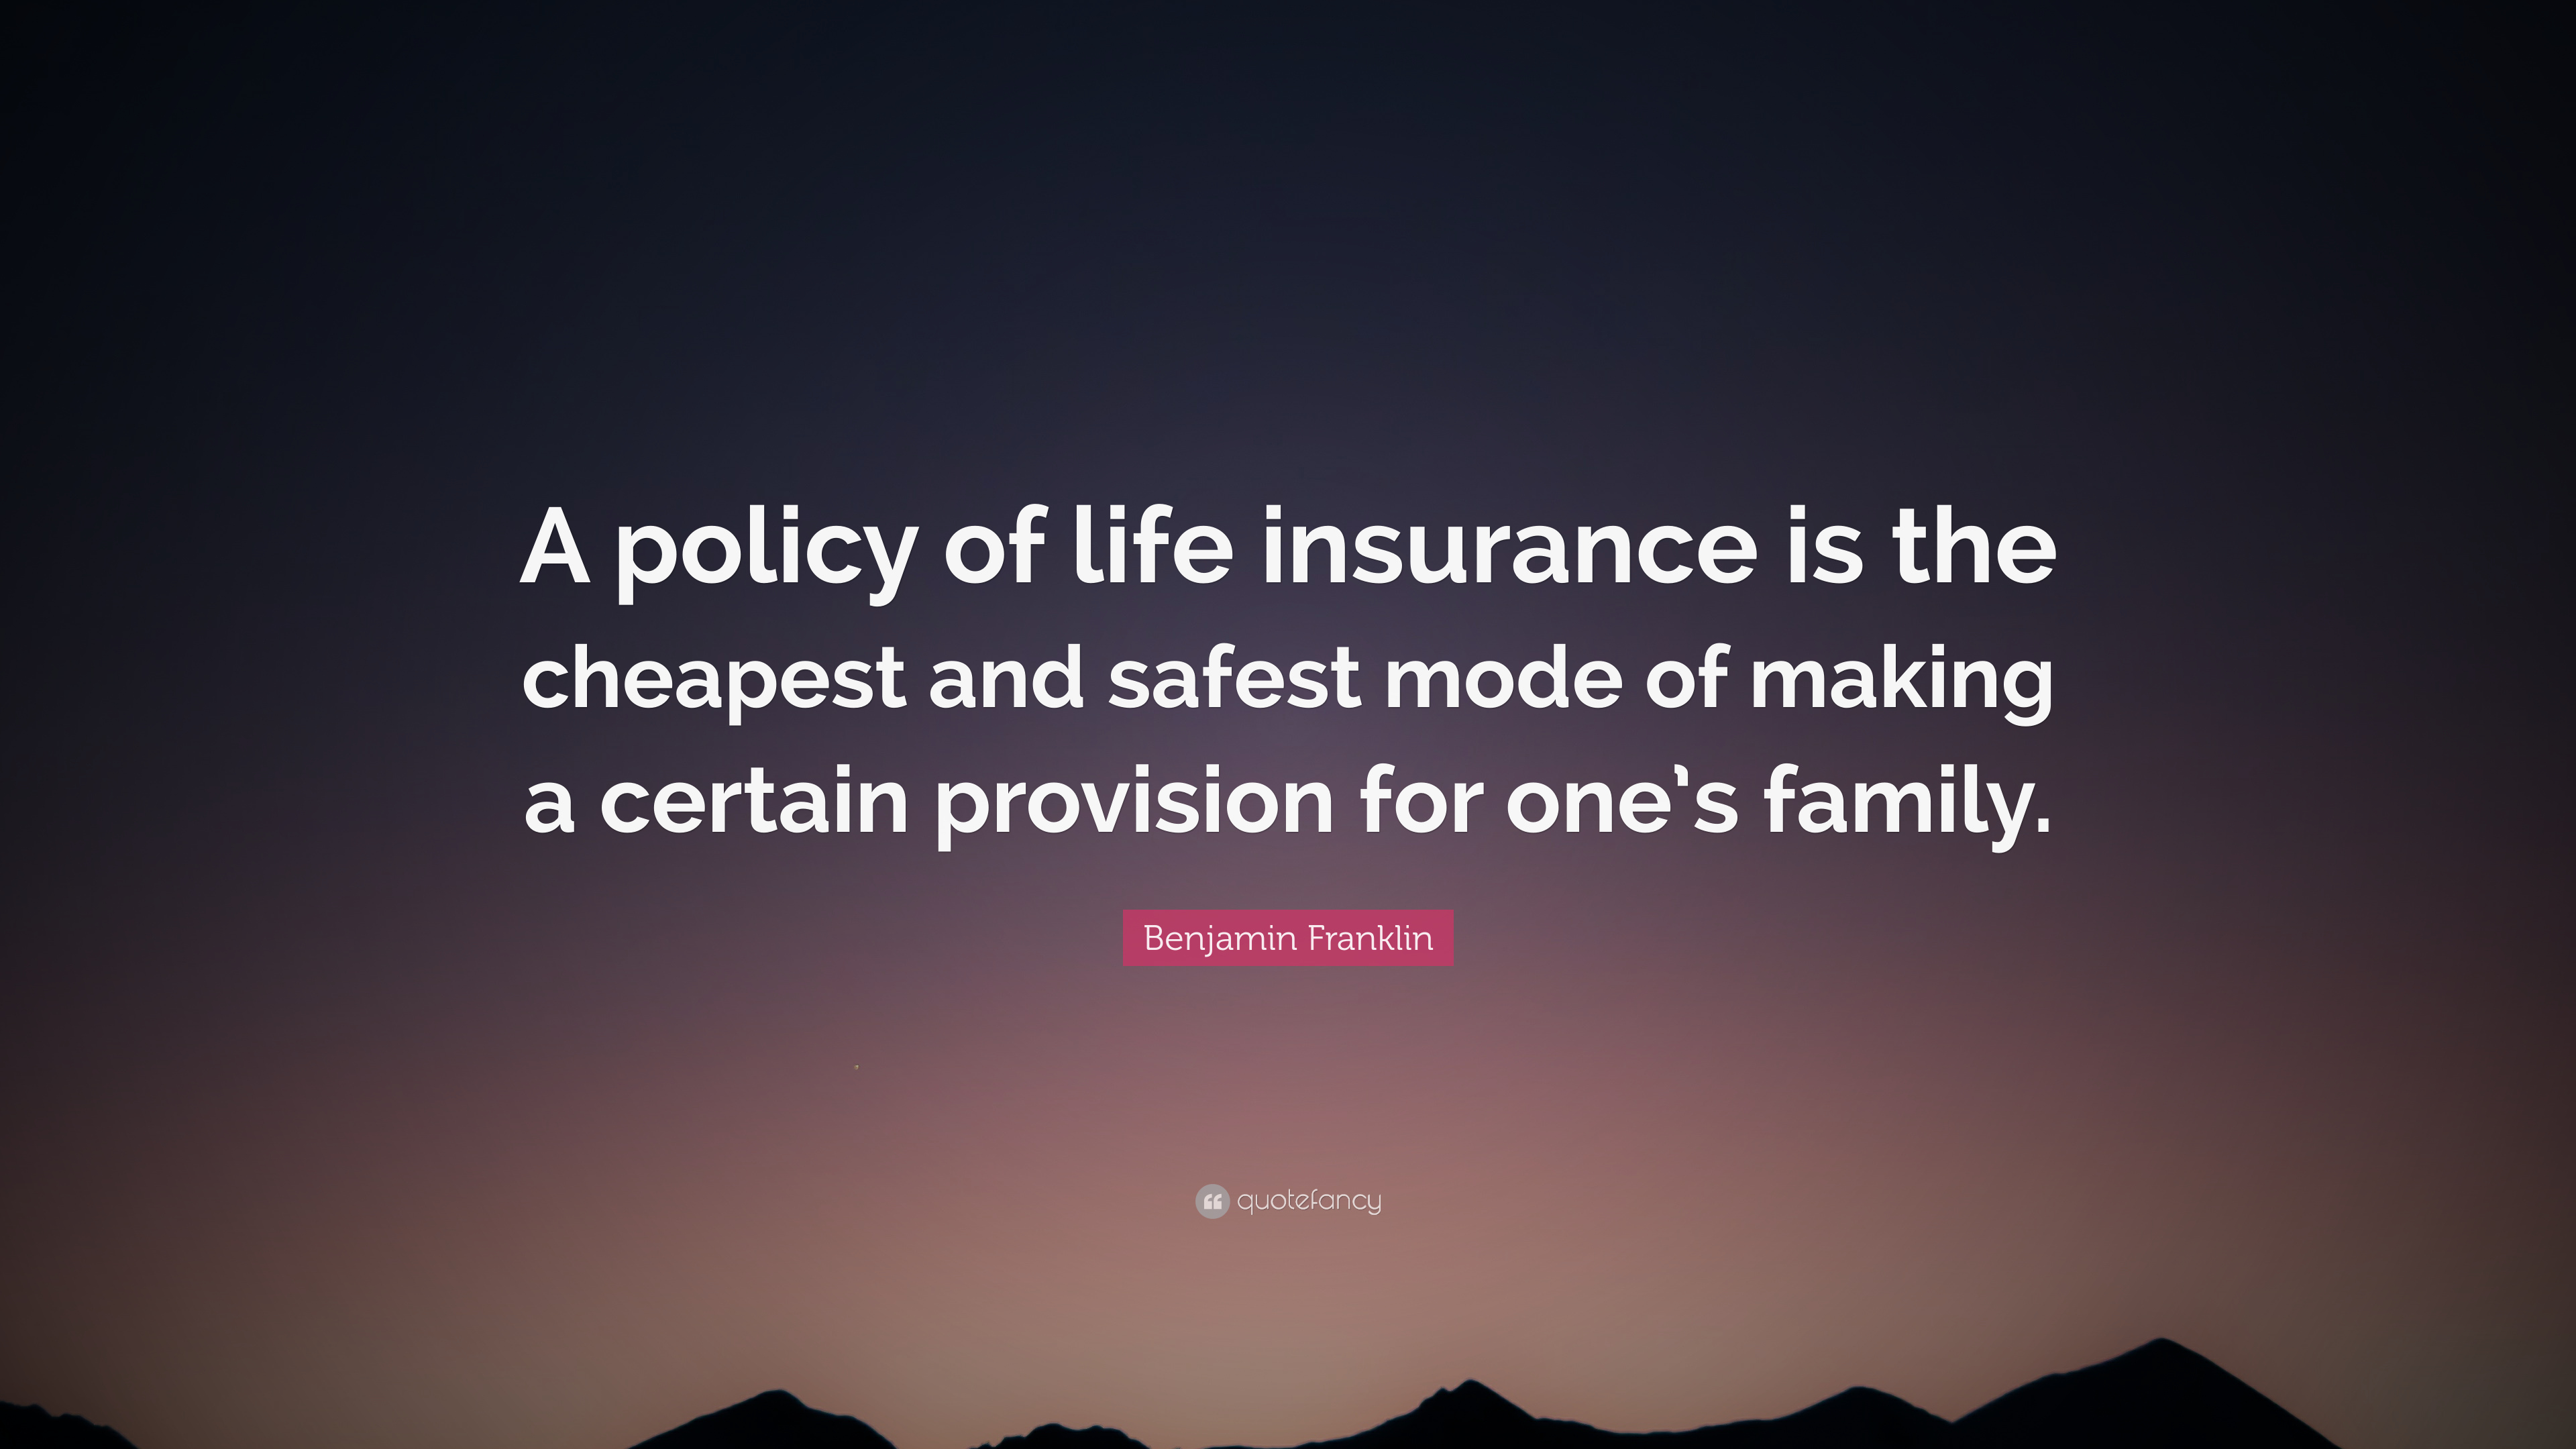 Quotes About Life Insurance Benjamin Franklin Quotes About Life Insurance  44Billionlater